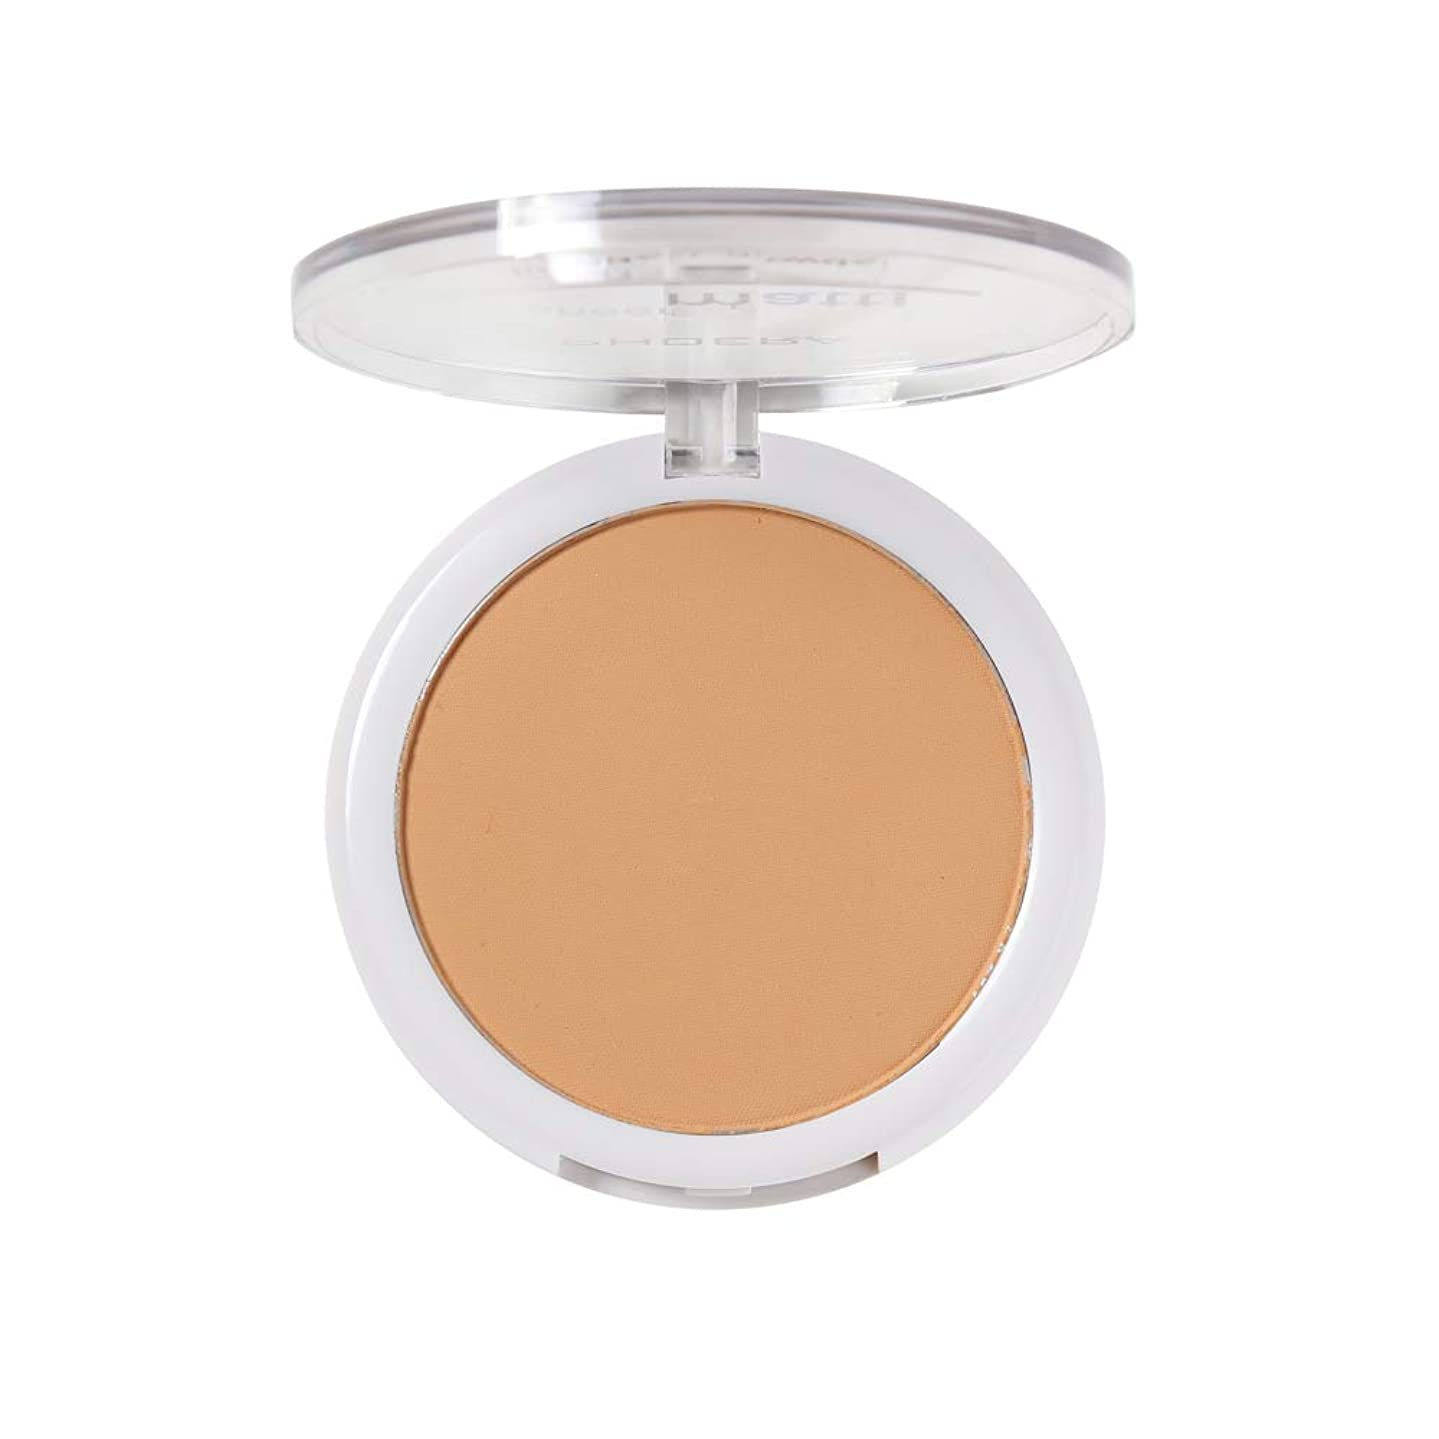 PHOERA Hydrating Makeup Fixing Facial Oil Control Foundation Longlasting Face Pressed Powder